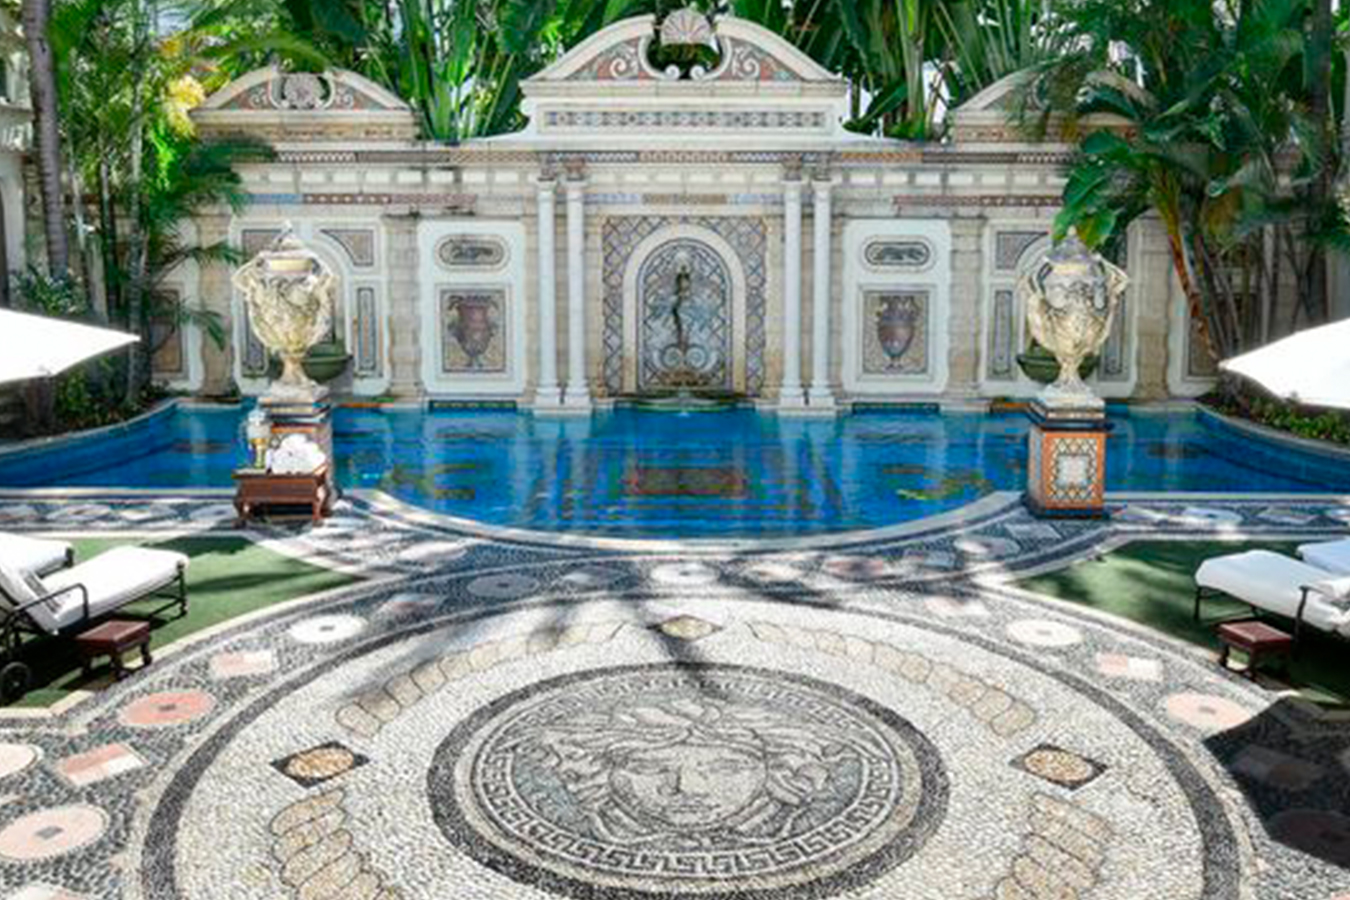 mansion-versace-foto-cortesía